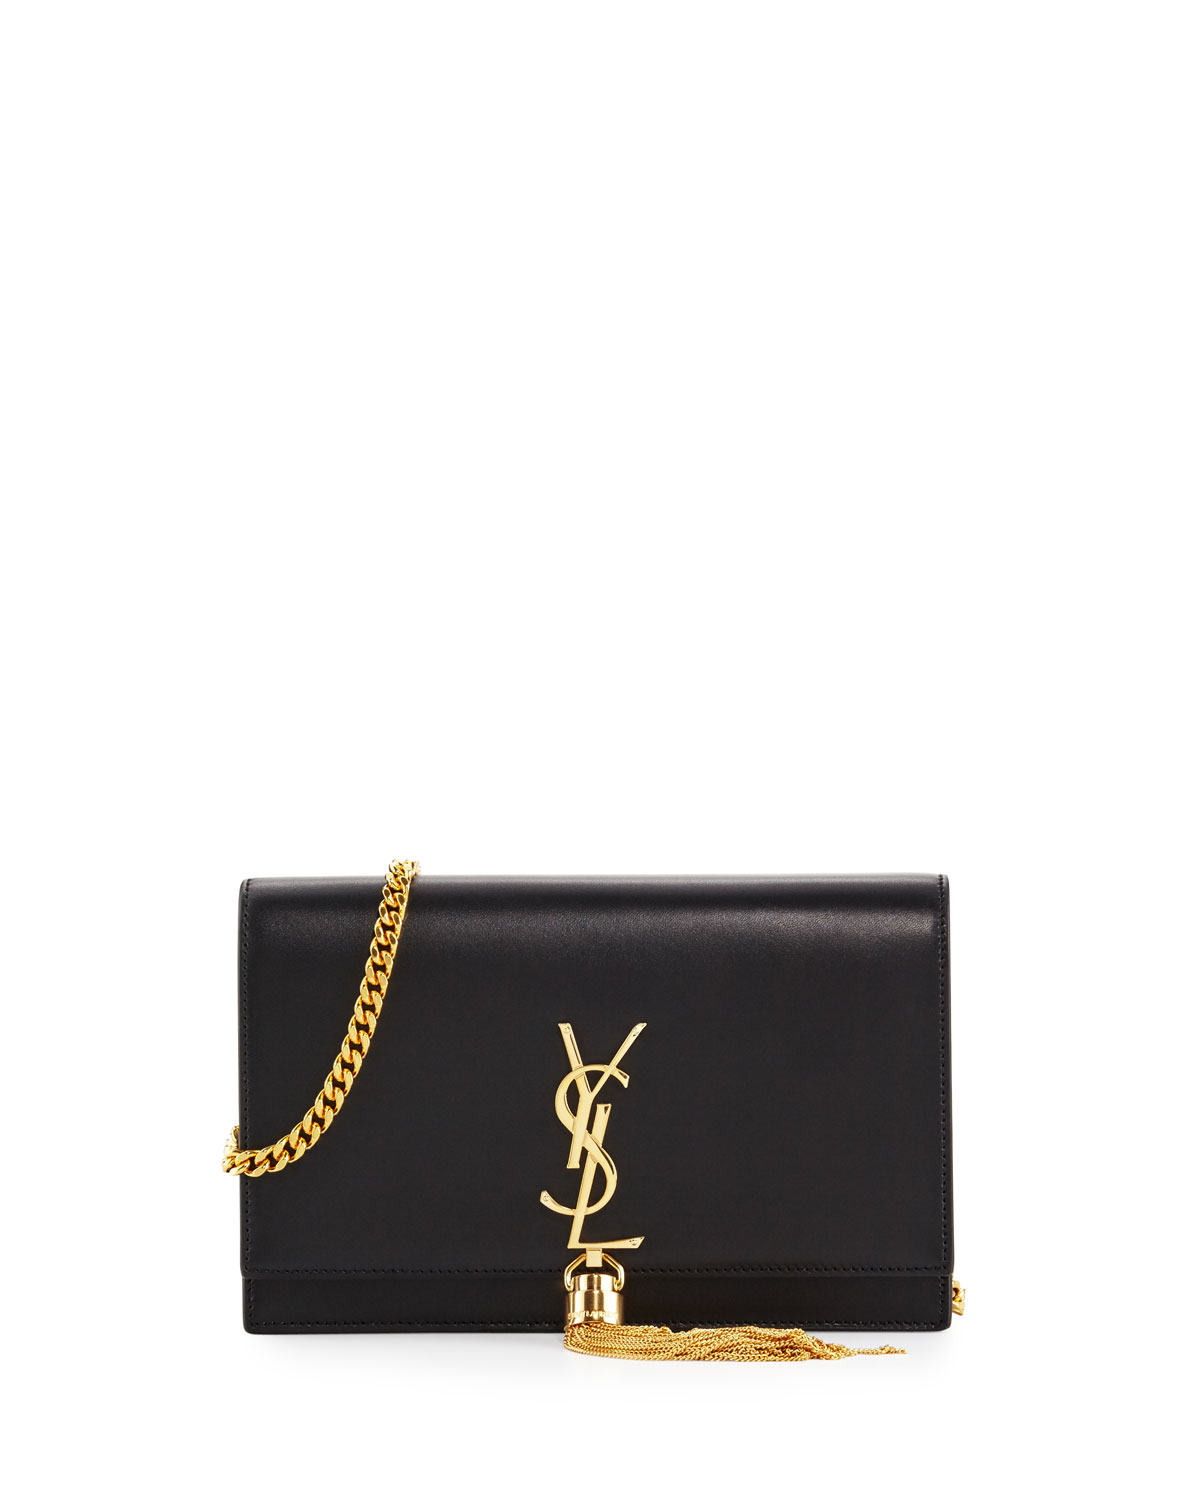 6e66177e61c Saint Laurent Kate Monogram YSL Tassel Chain Wallet